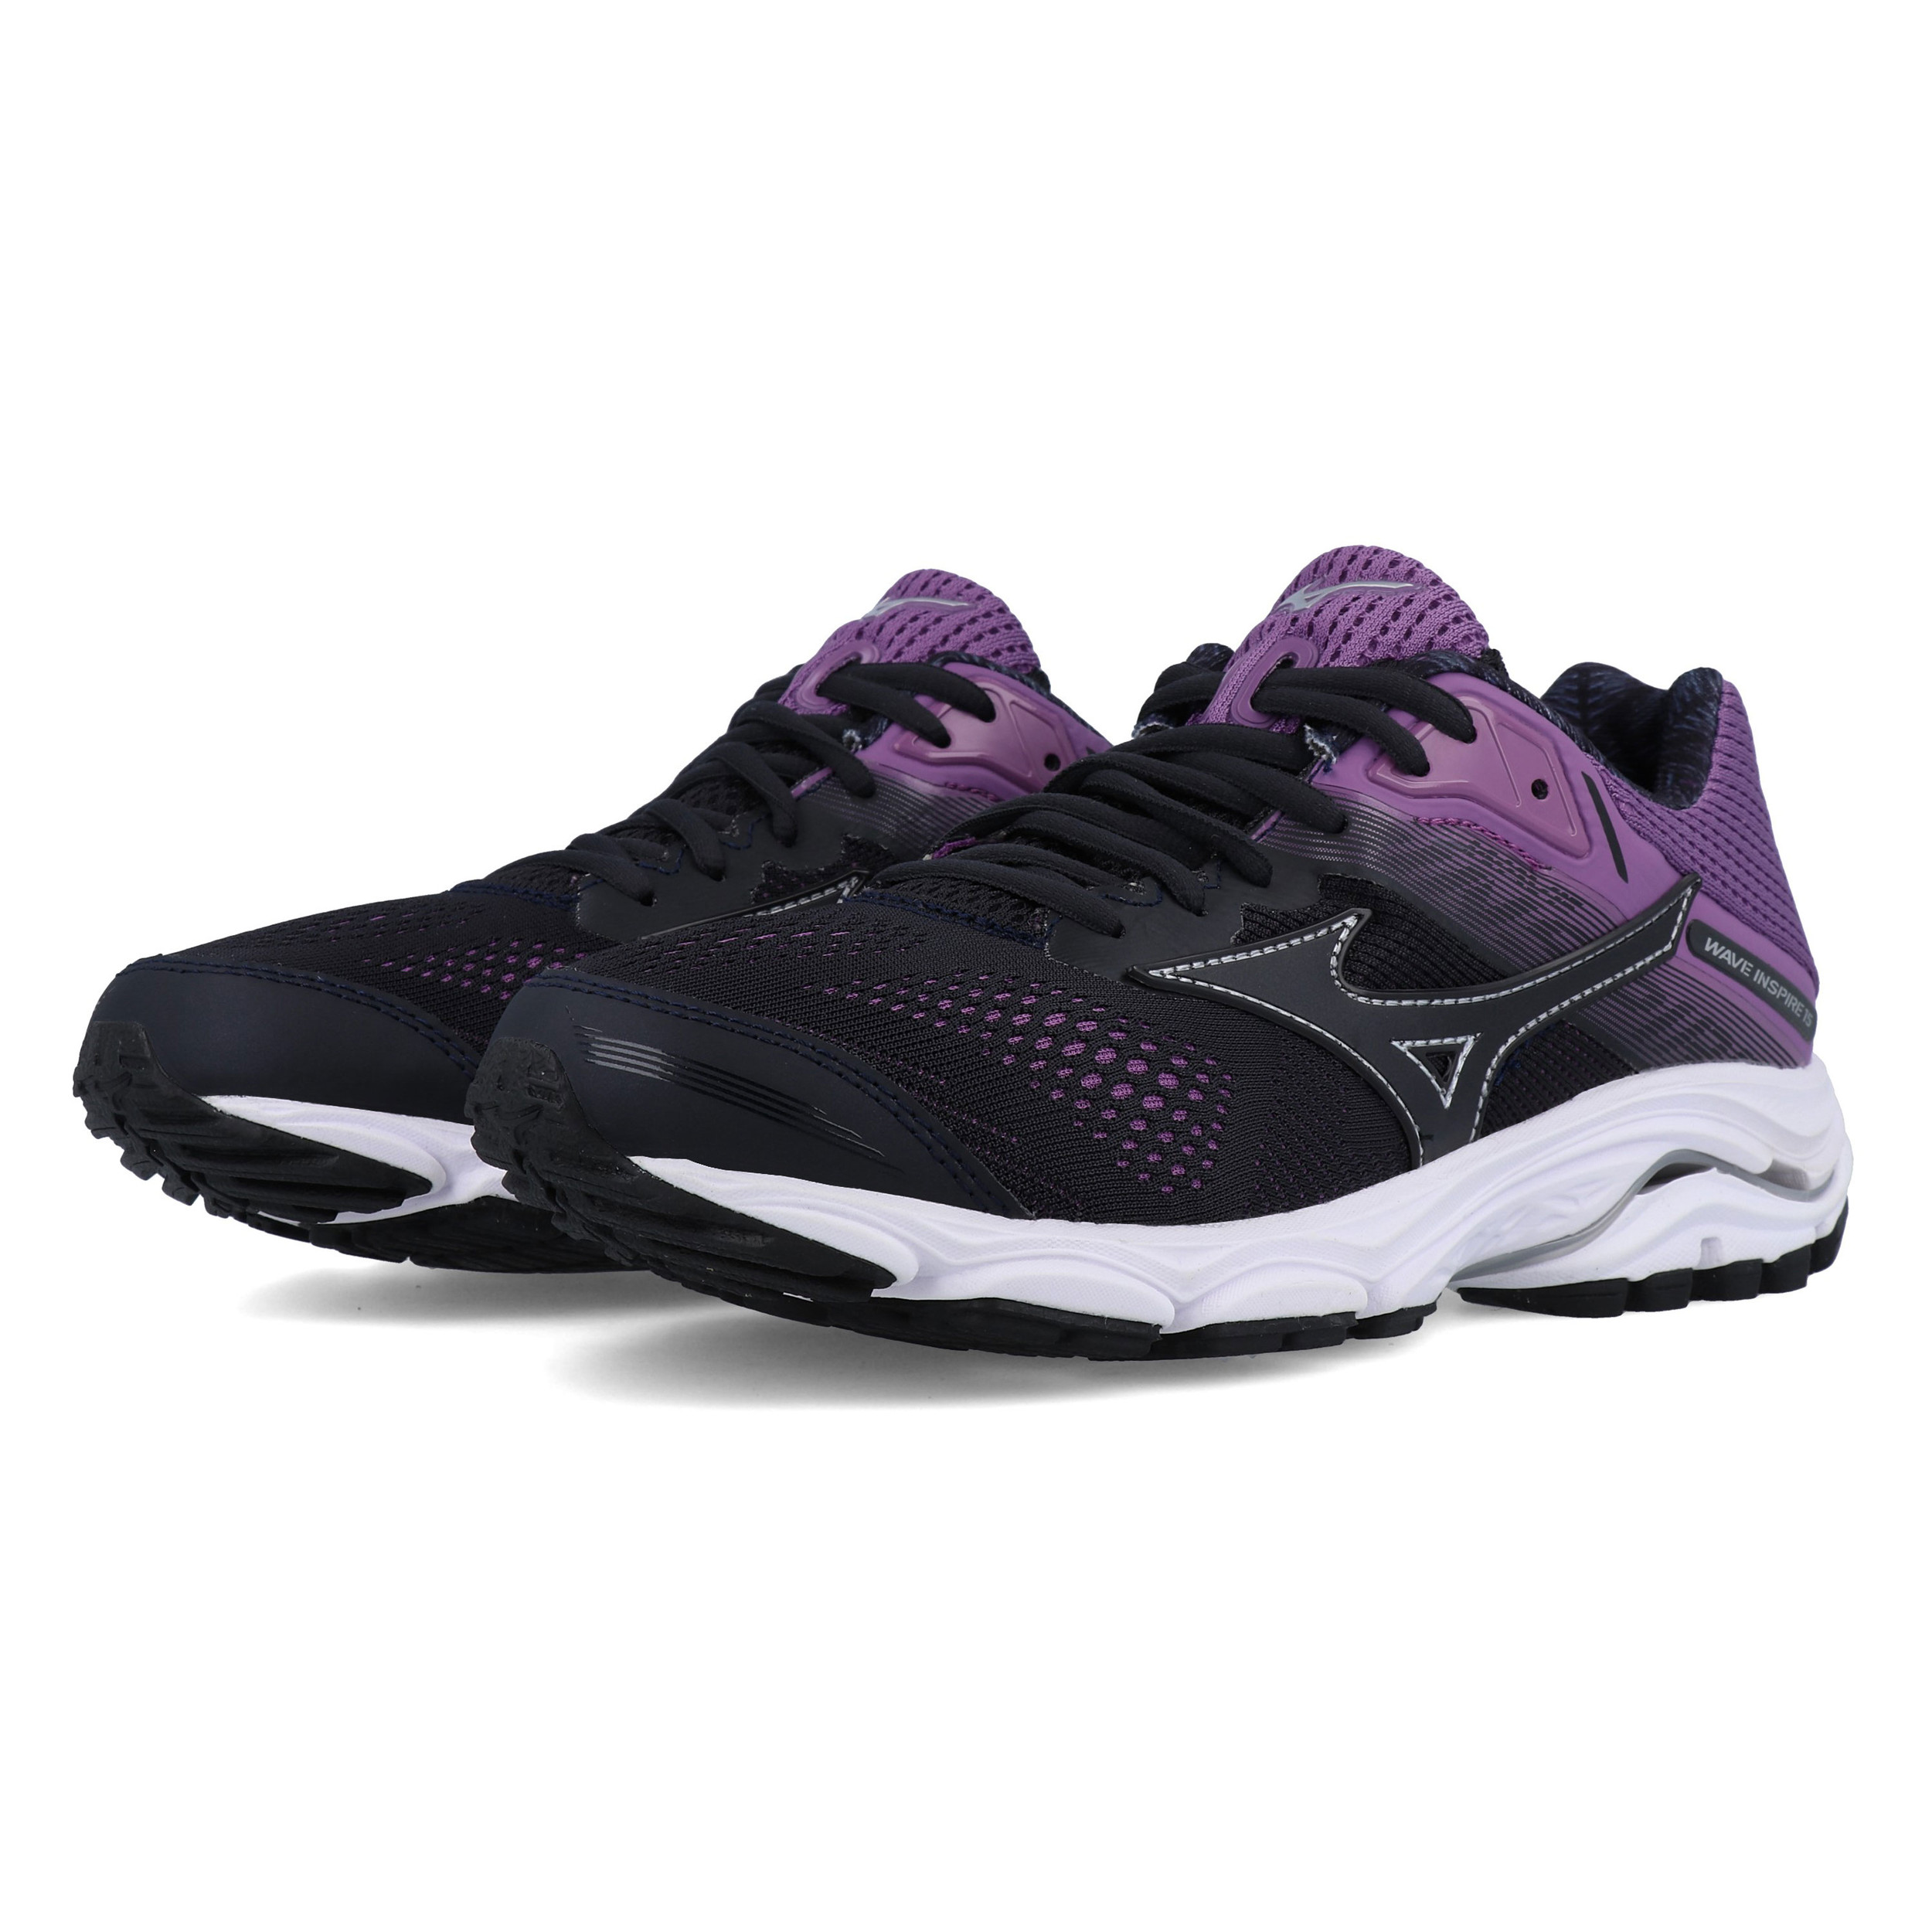 Mizuno Wave Inspire 15 Women's Running Shoes